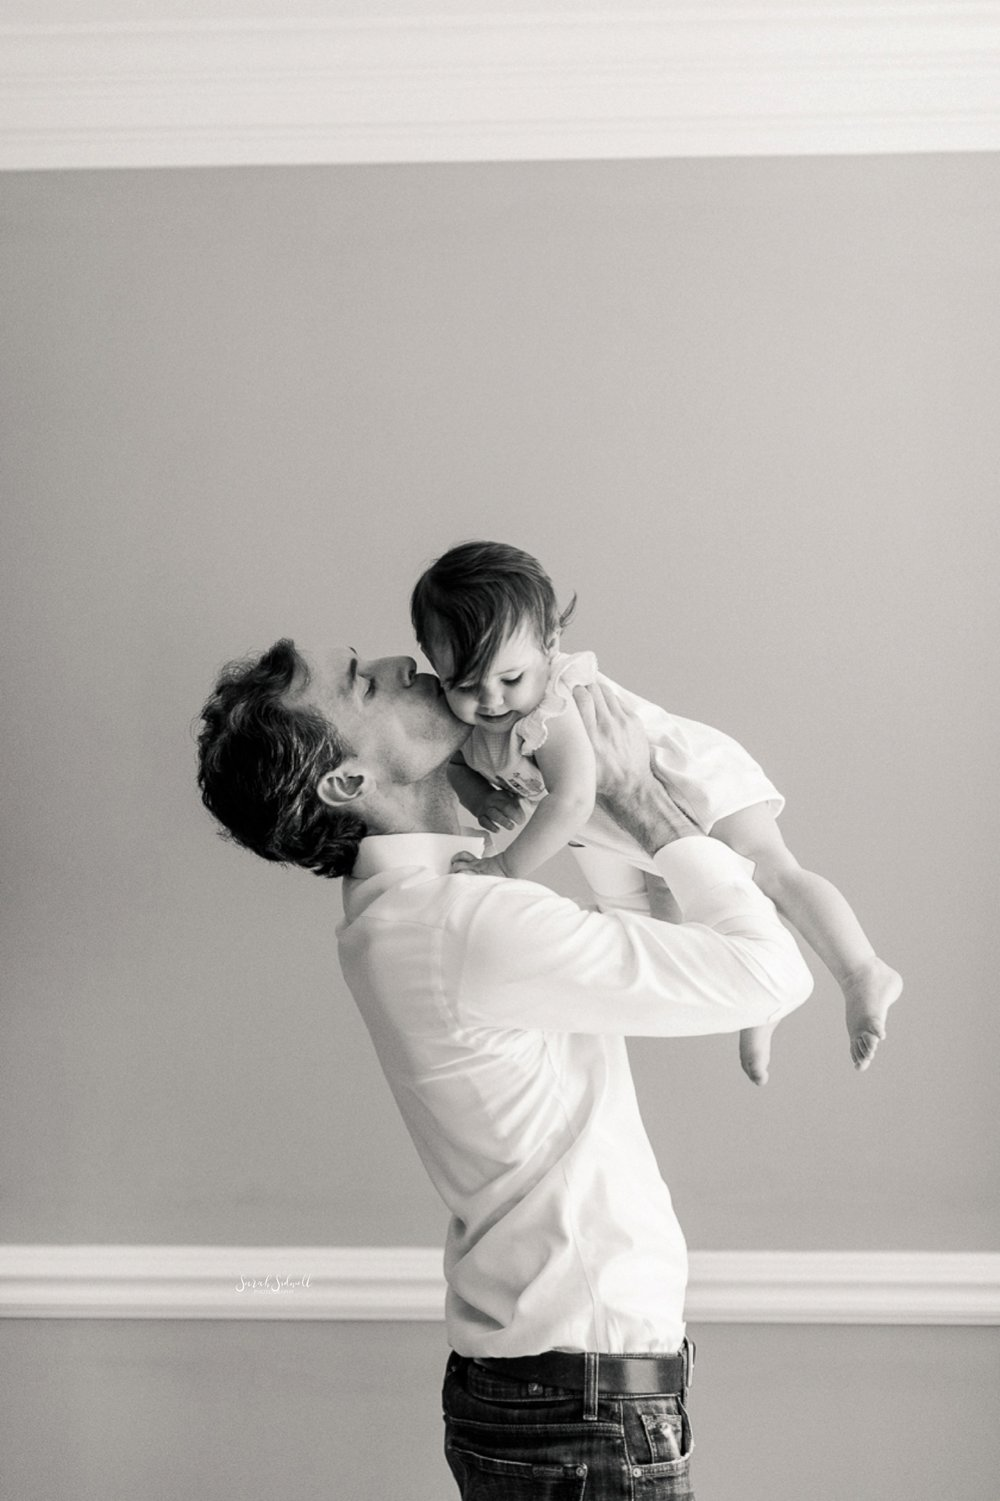 A dad kisses his daughter on the cheek.